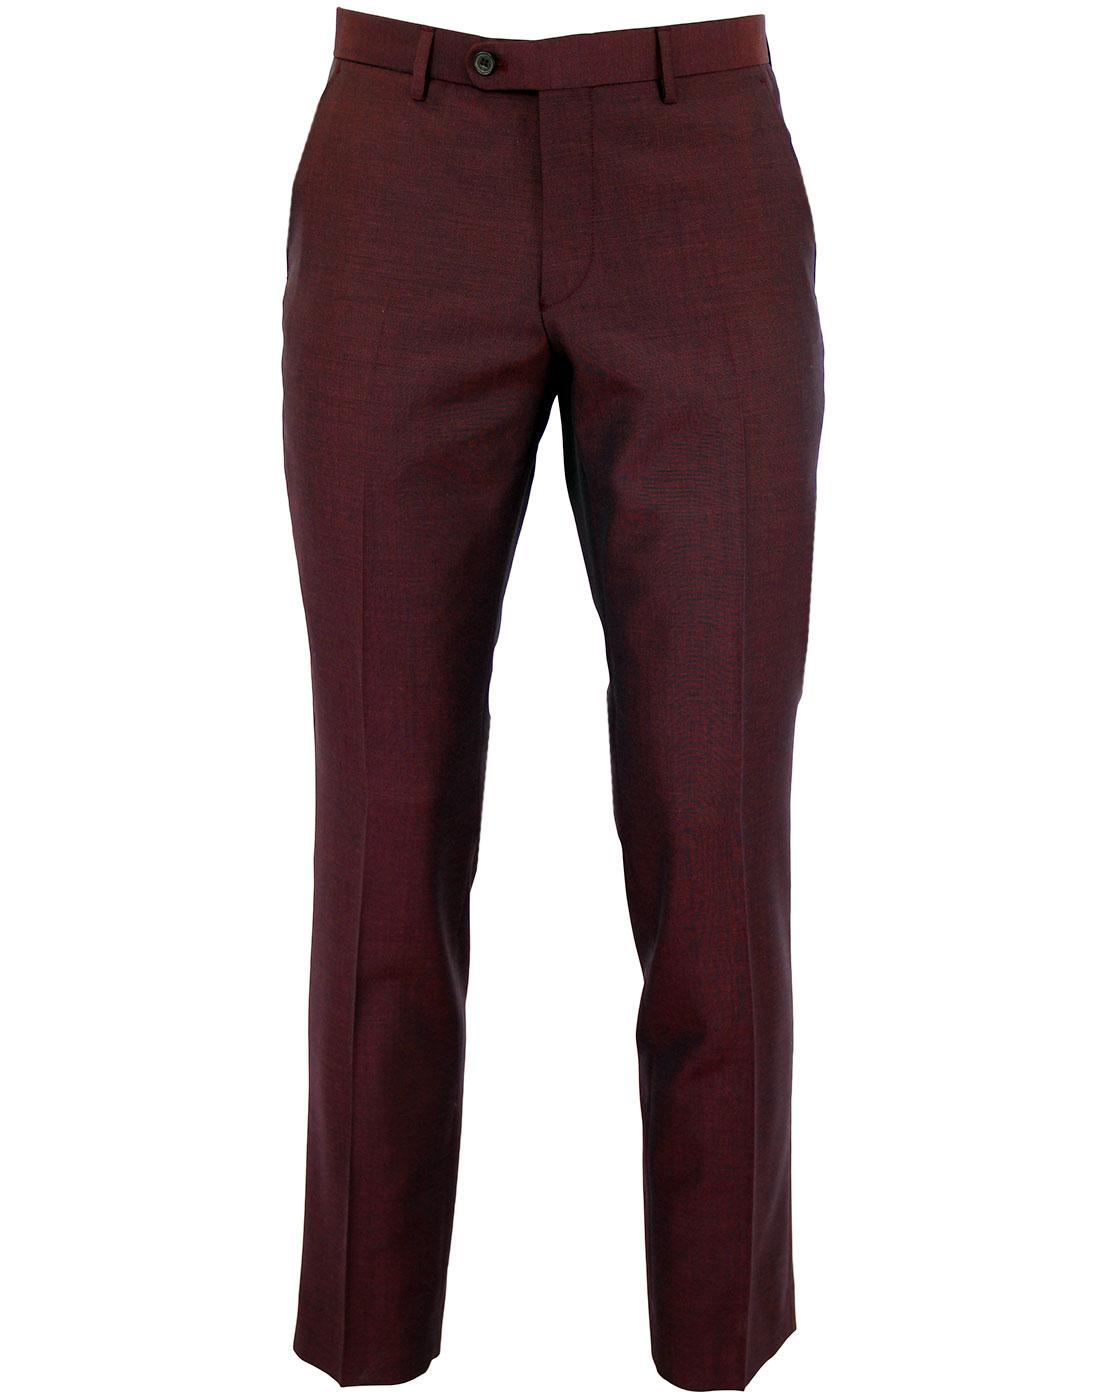 Retro 60s Mod Berry Red Mohair Blend Slim Trousers